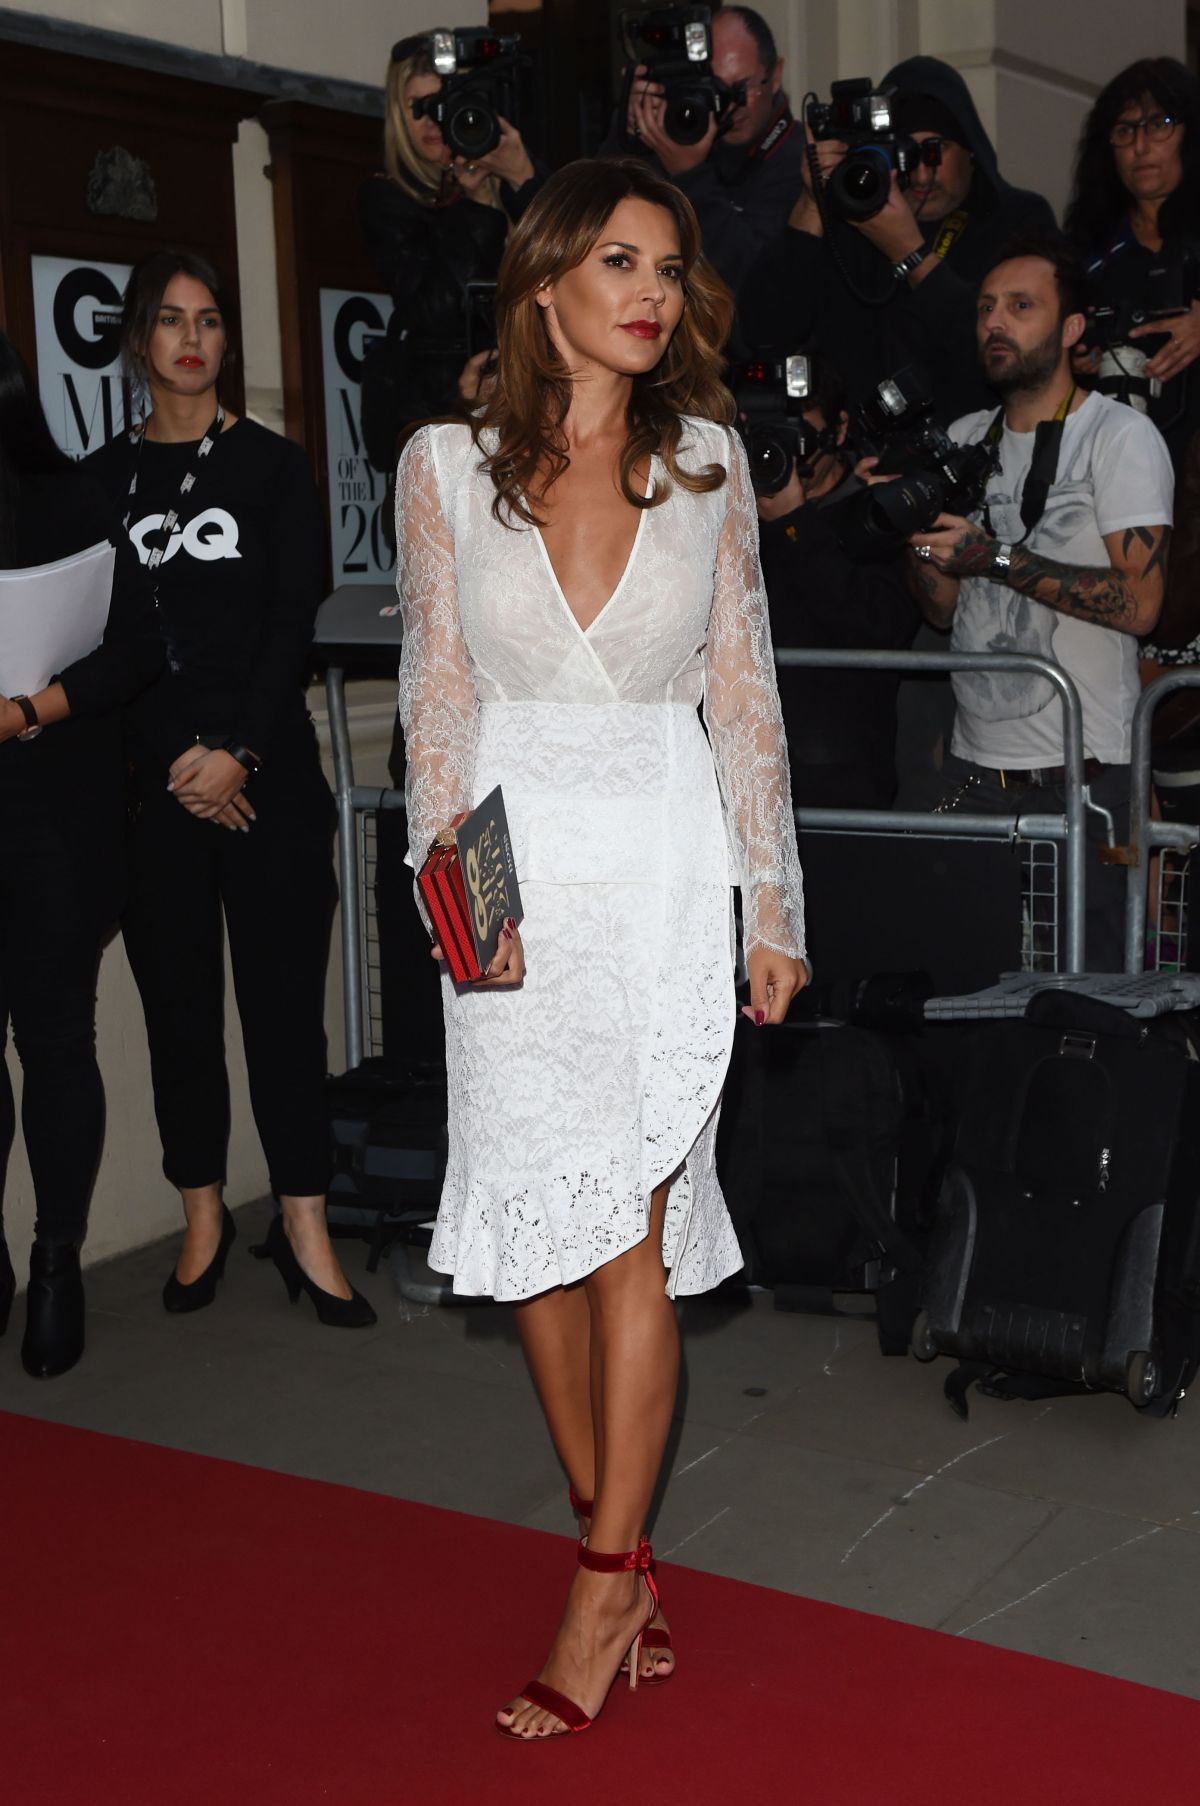 DANIELLE LINEKER at GQ Men of the Year 2015 Awards in London ...